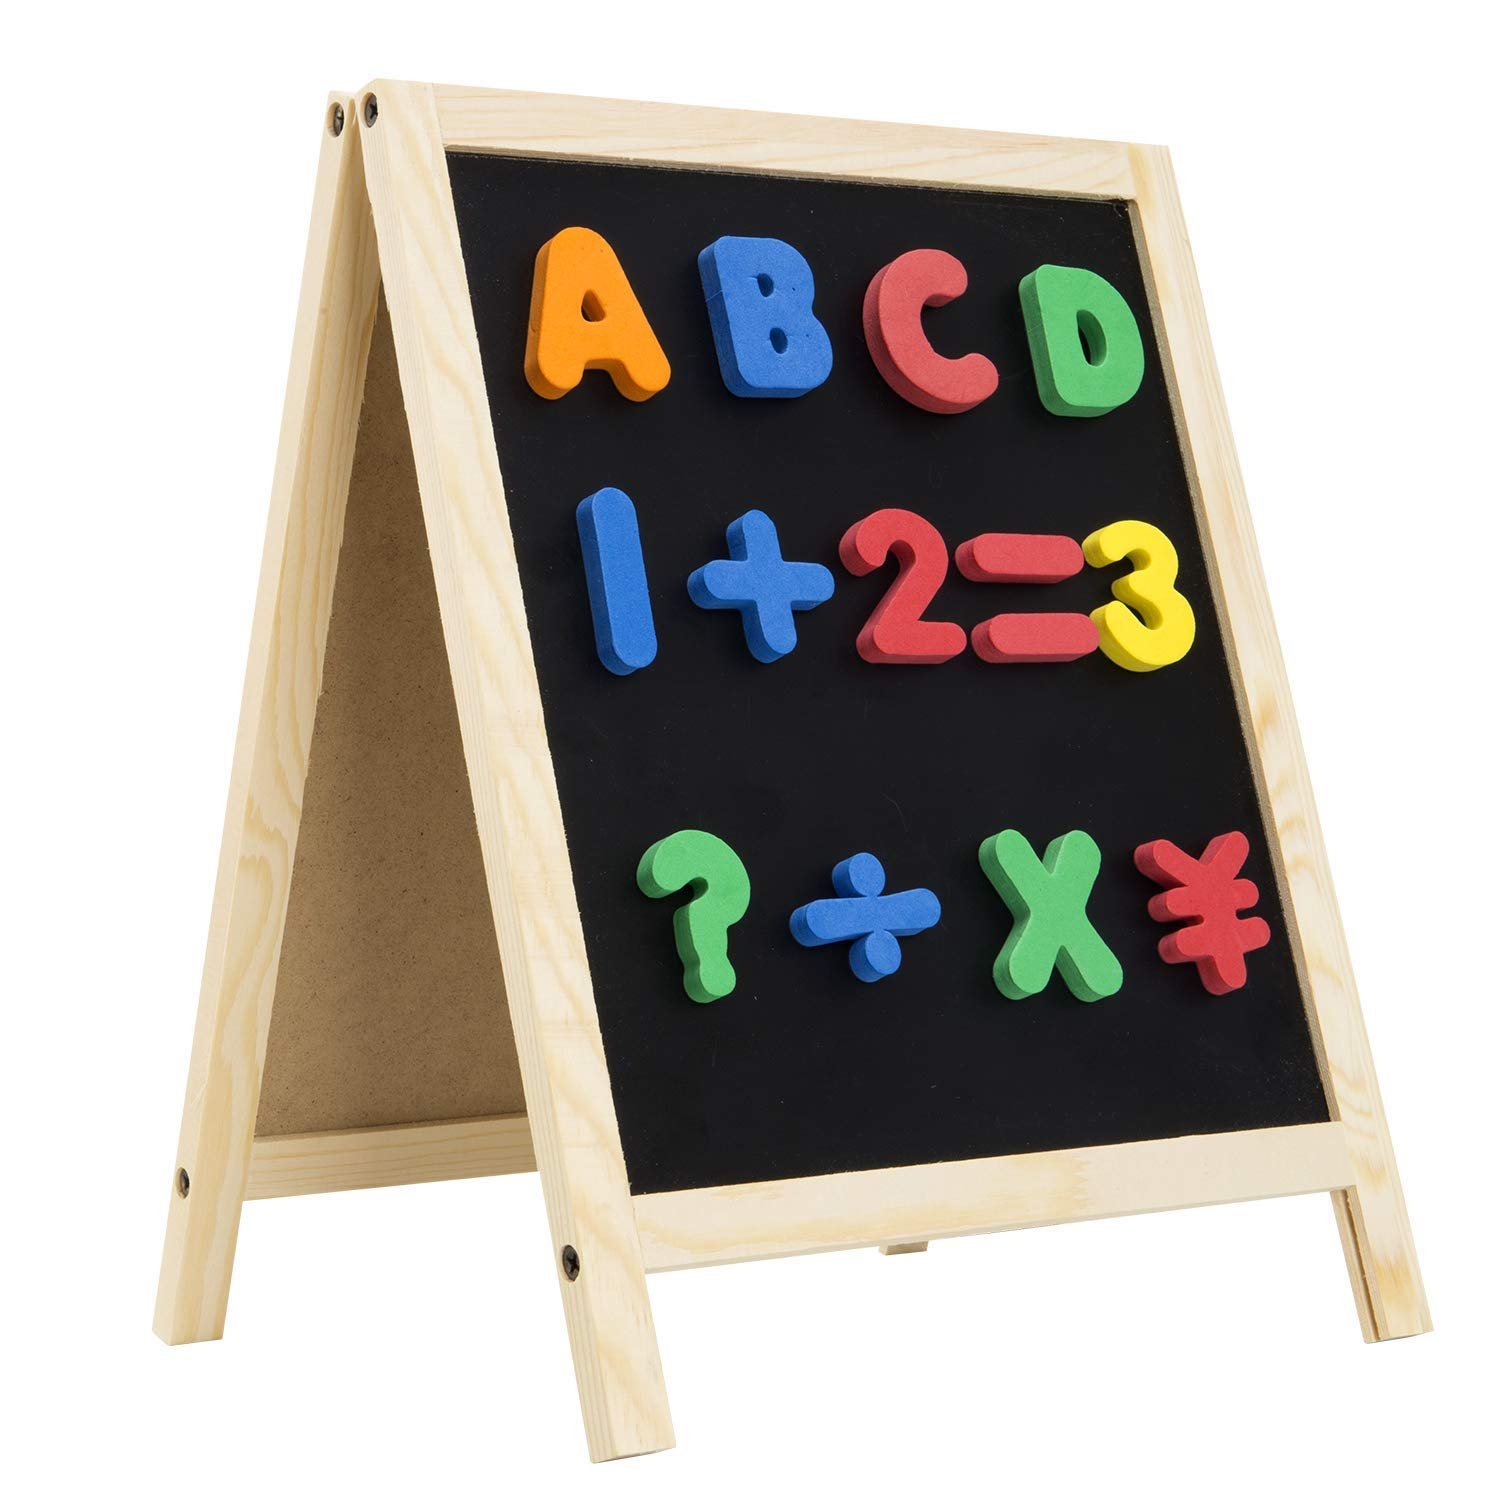 INNOCHEER Easel for Kids, Magnetic Wooden A-Frame Standing Board - Whiteboard & Chalkboard for Boys and Girls Writing, Drawing & Home Decoration by INNOCHEER